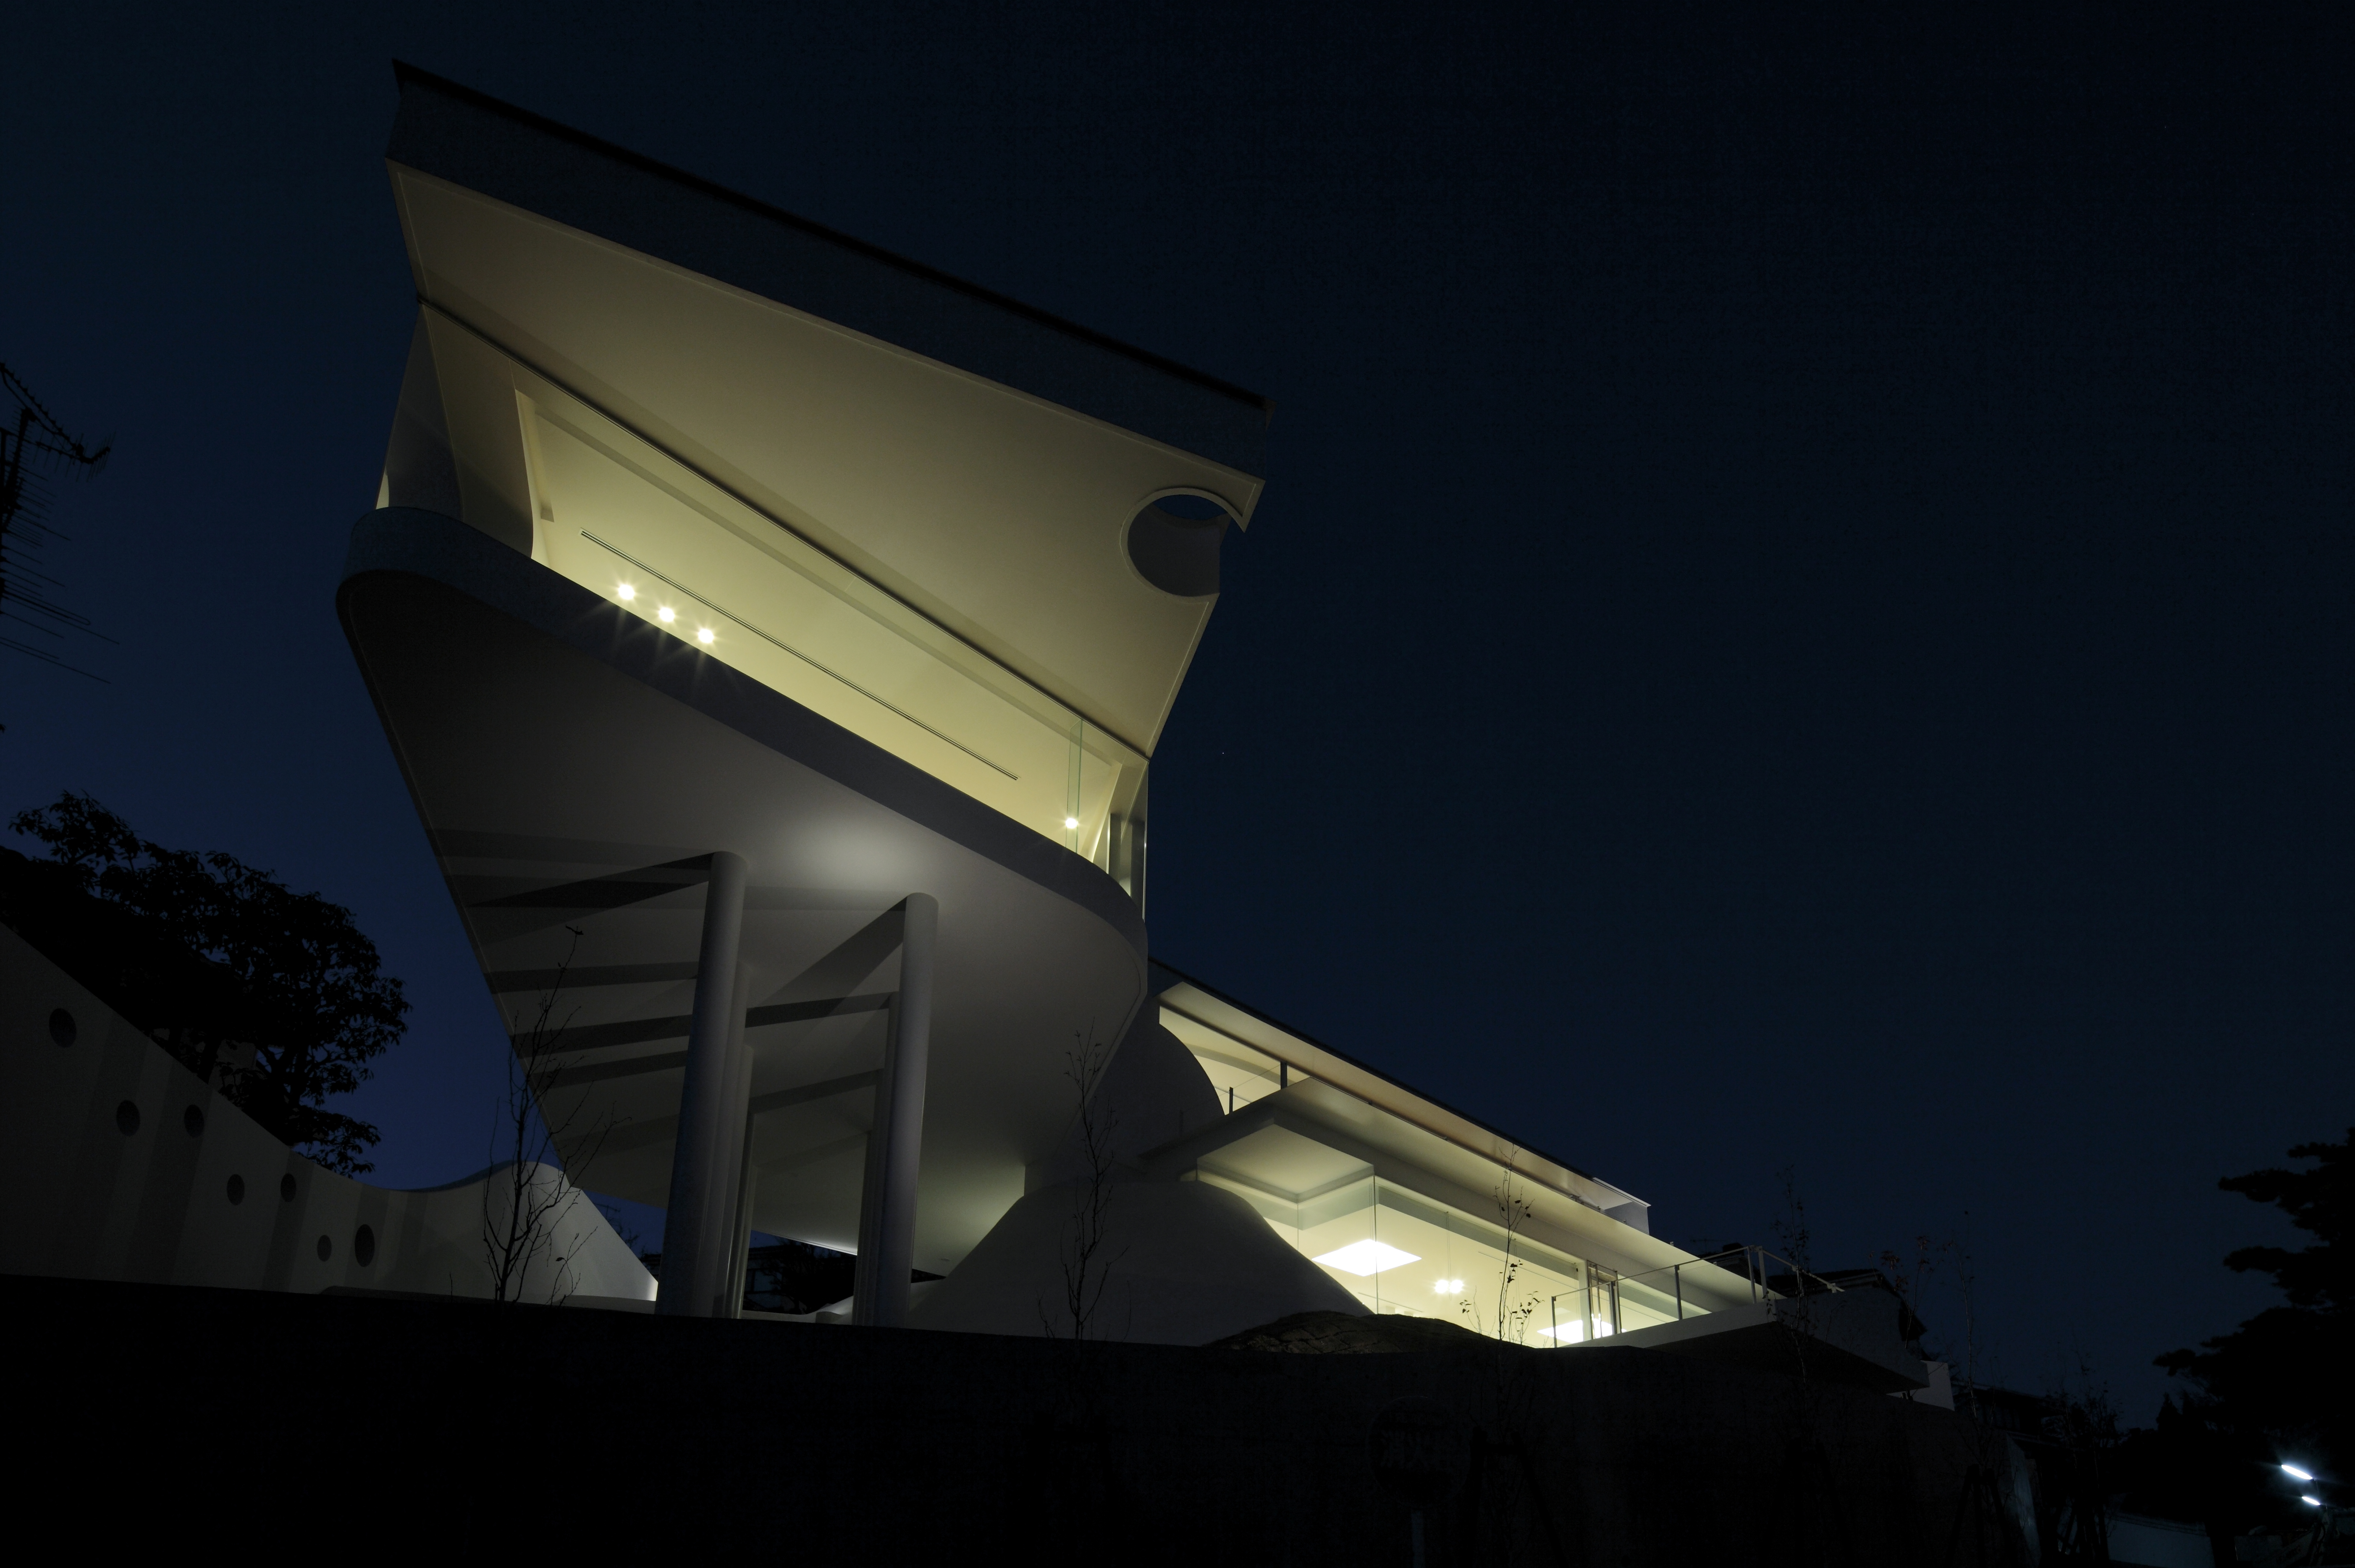 Looking up at the home at night, glowing from below and appearing to extend from the ground itself.